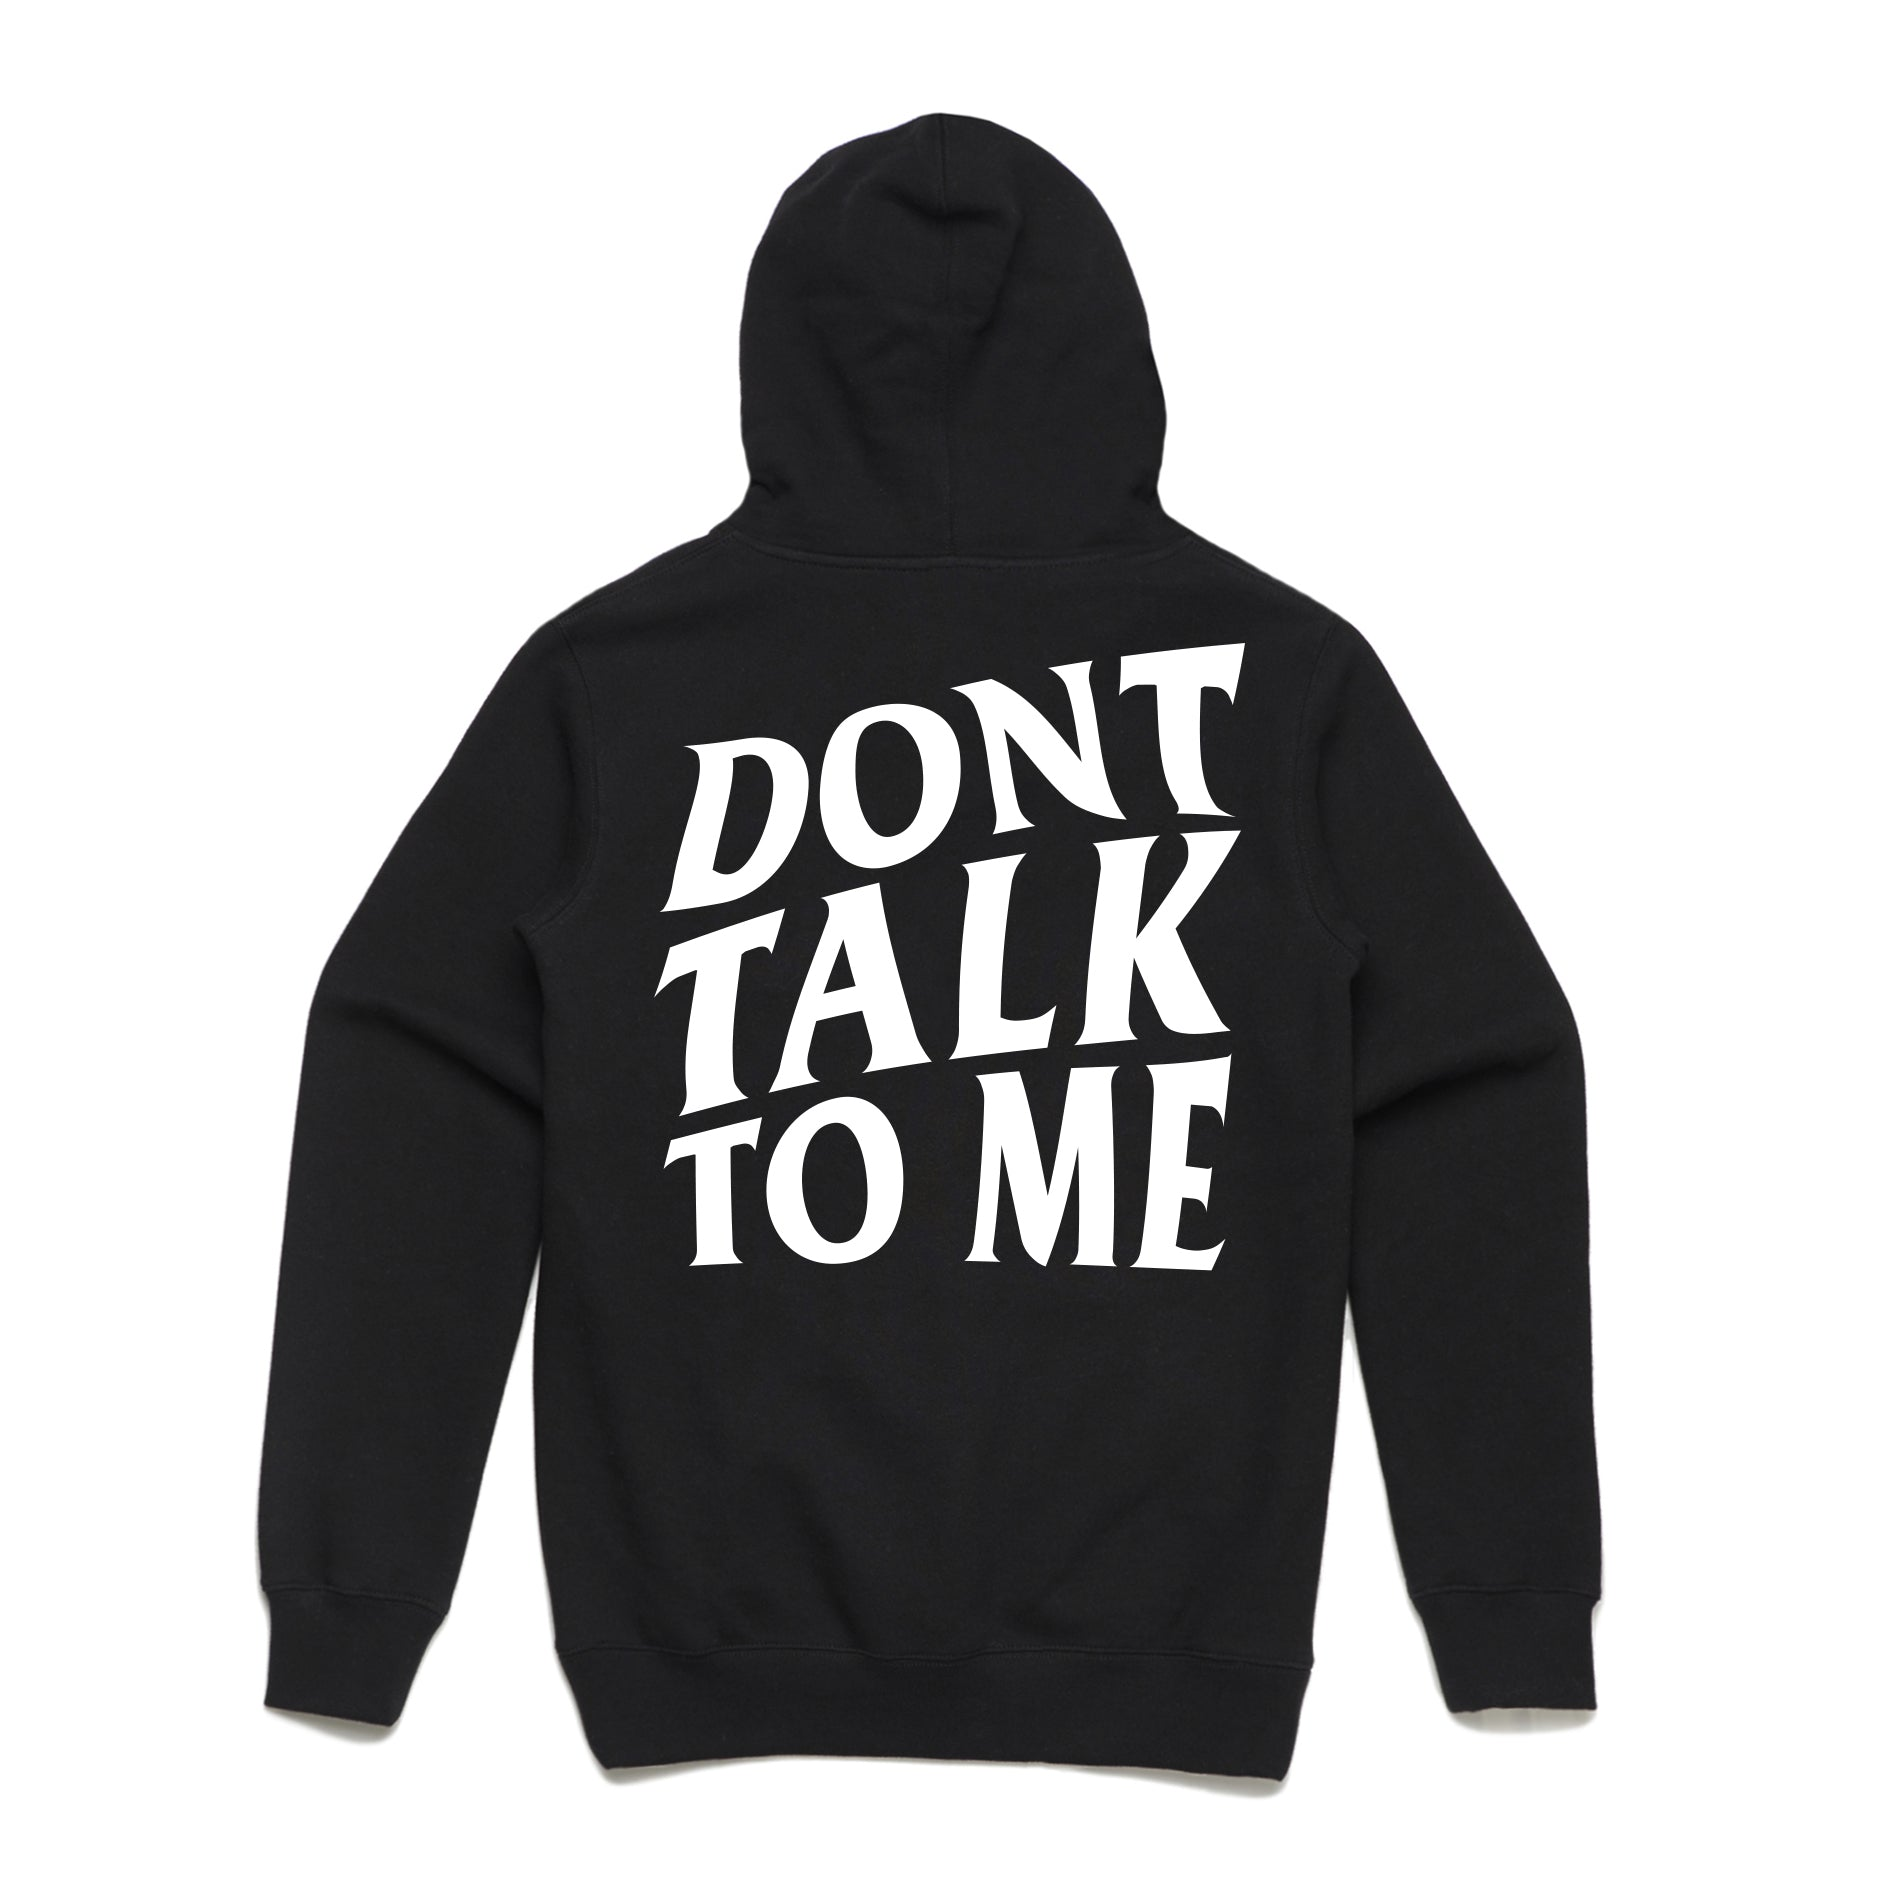 Don't Talk To Me - Black Hoodie